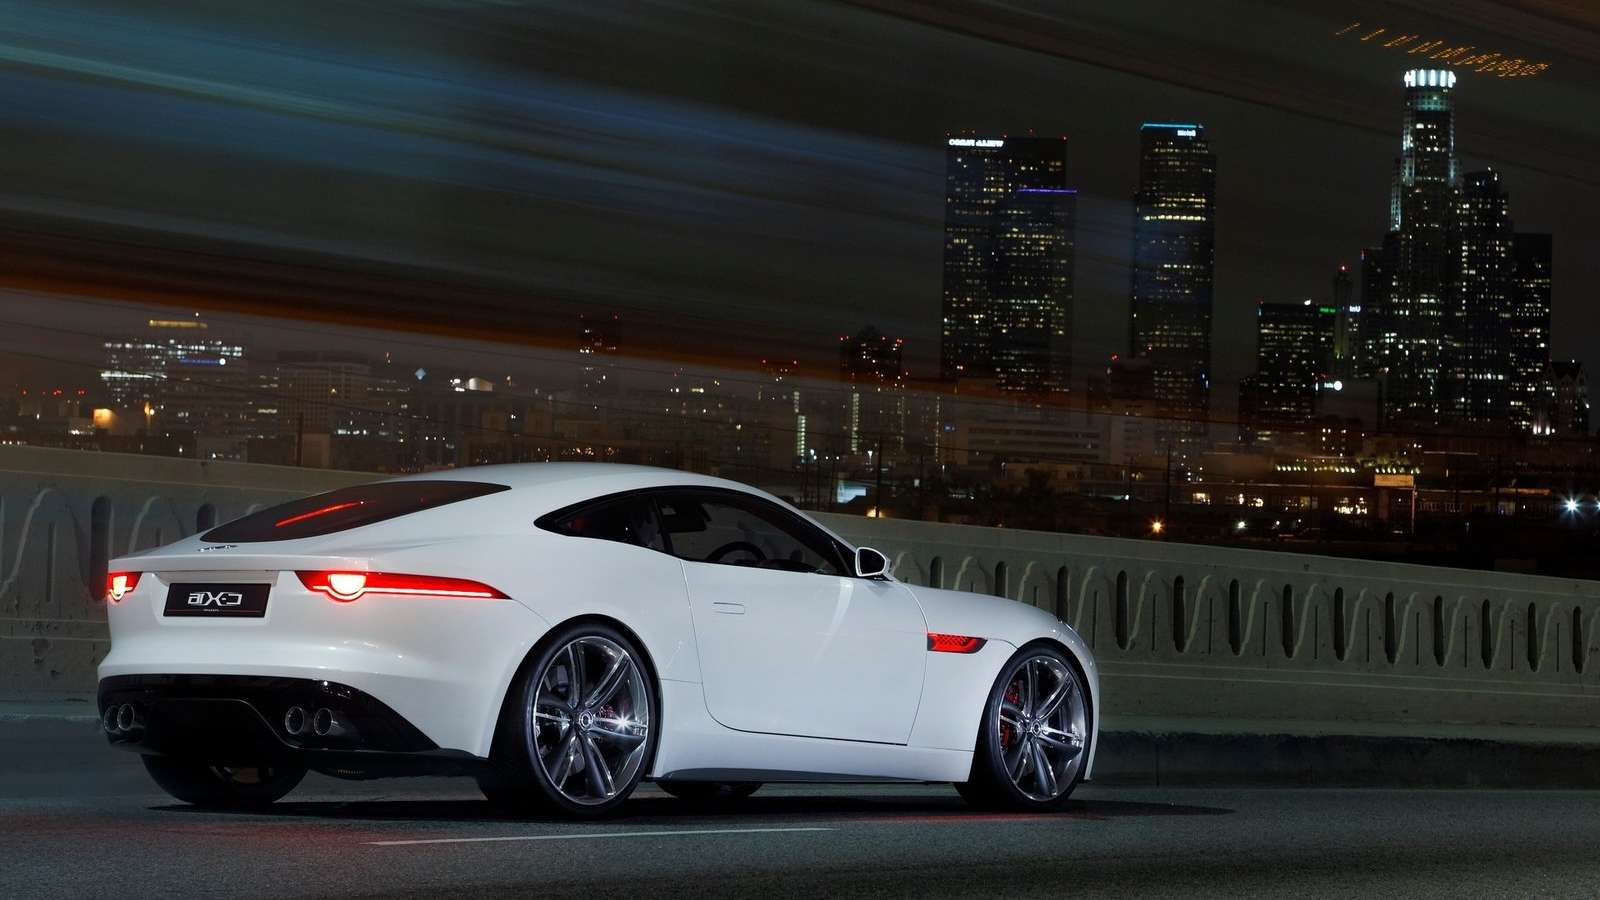 jaguar f type wallpapers full hd pictures